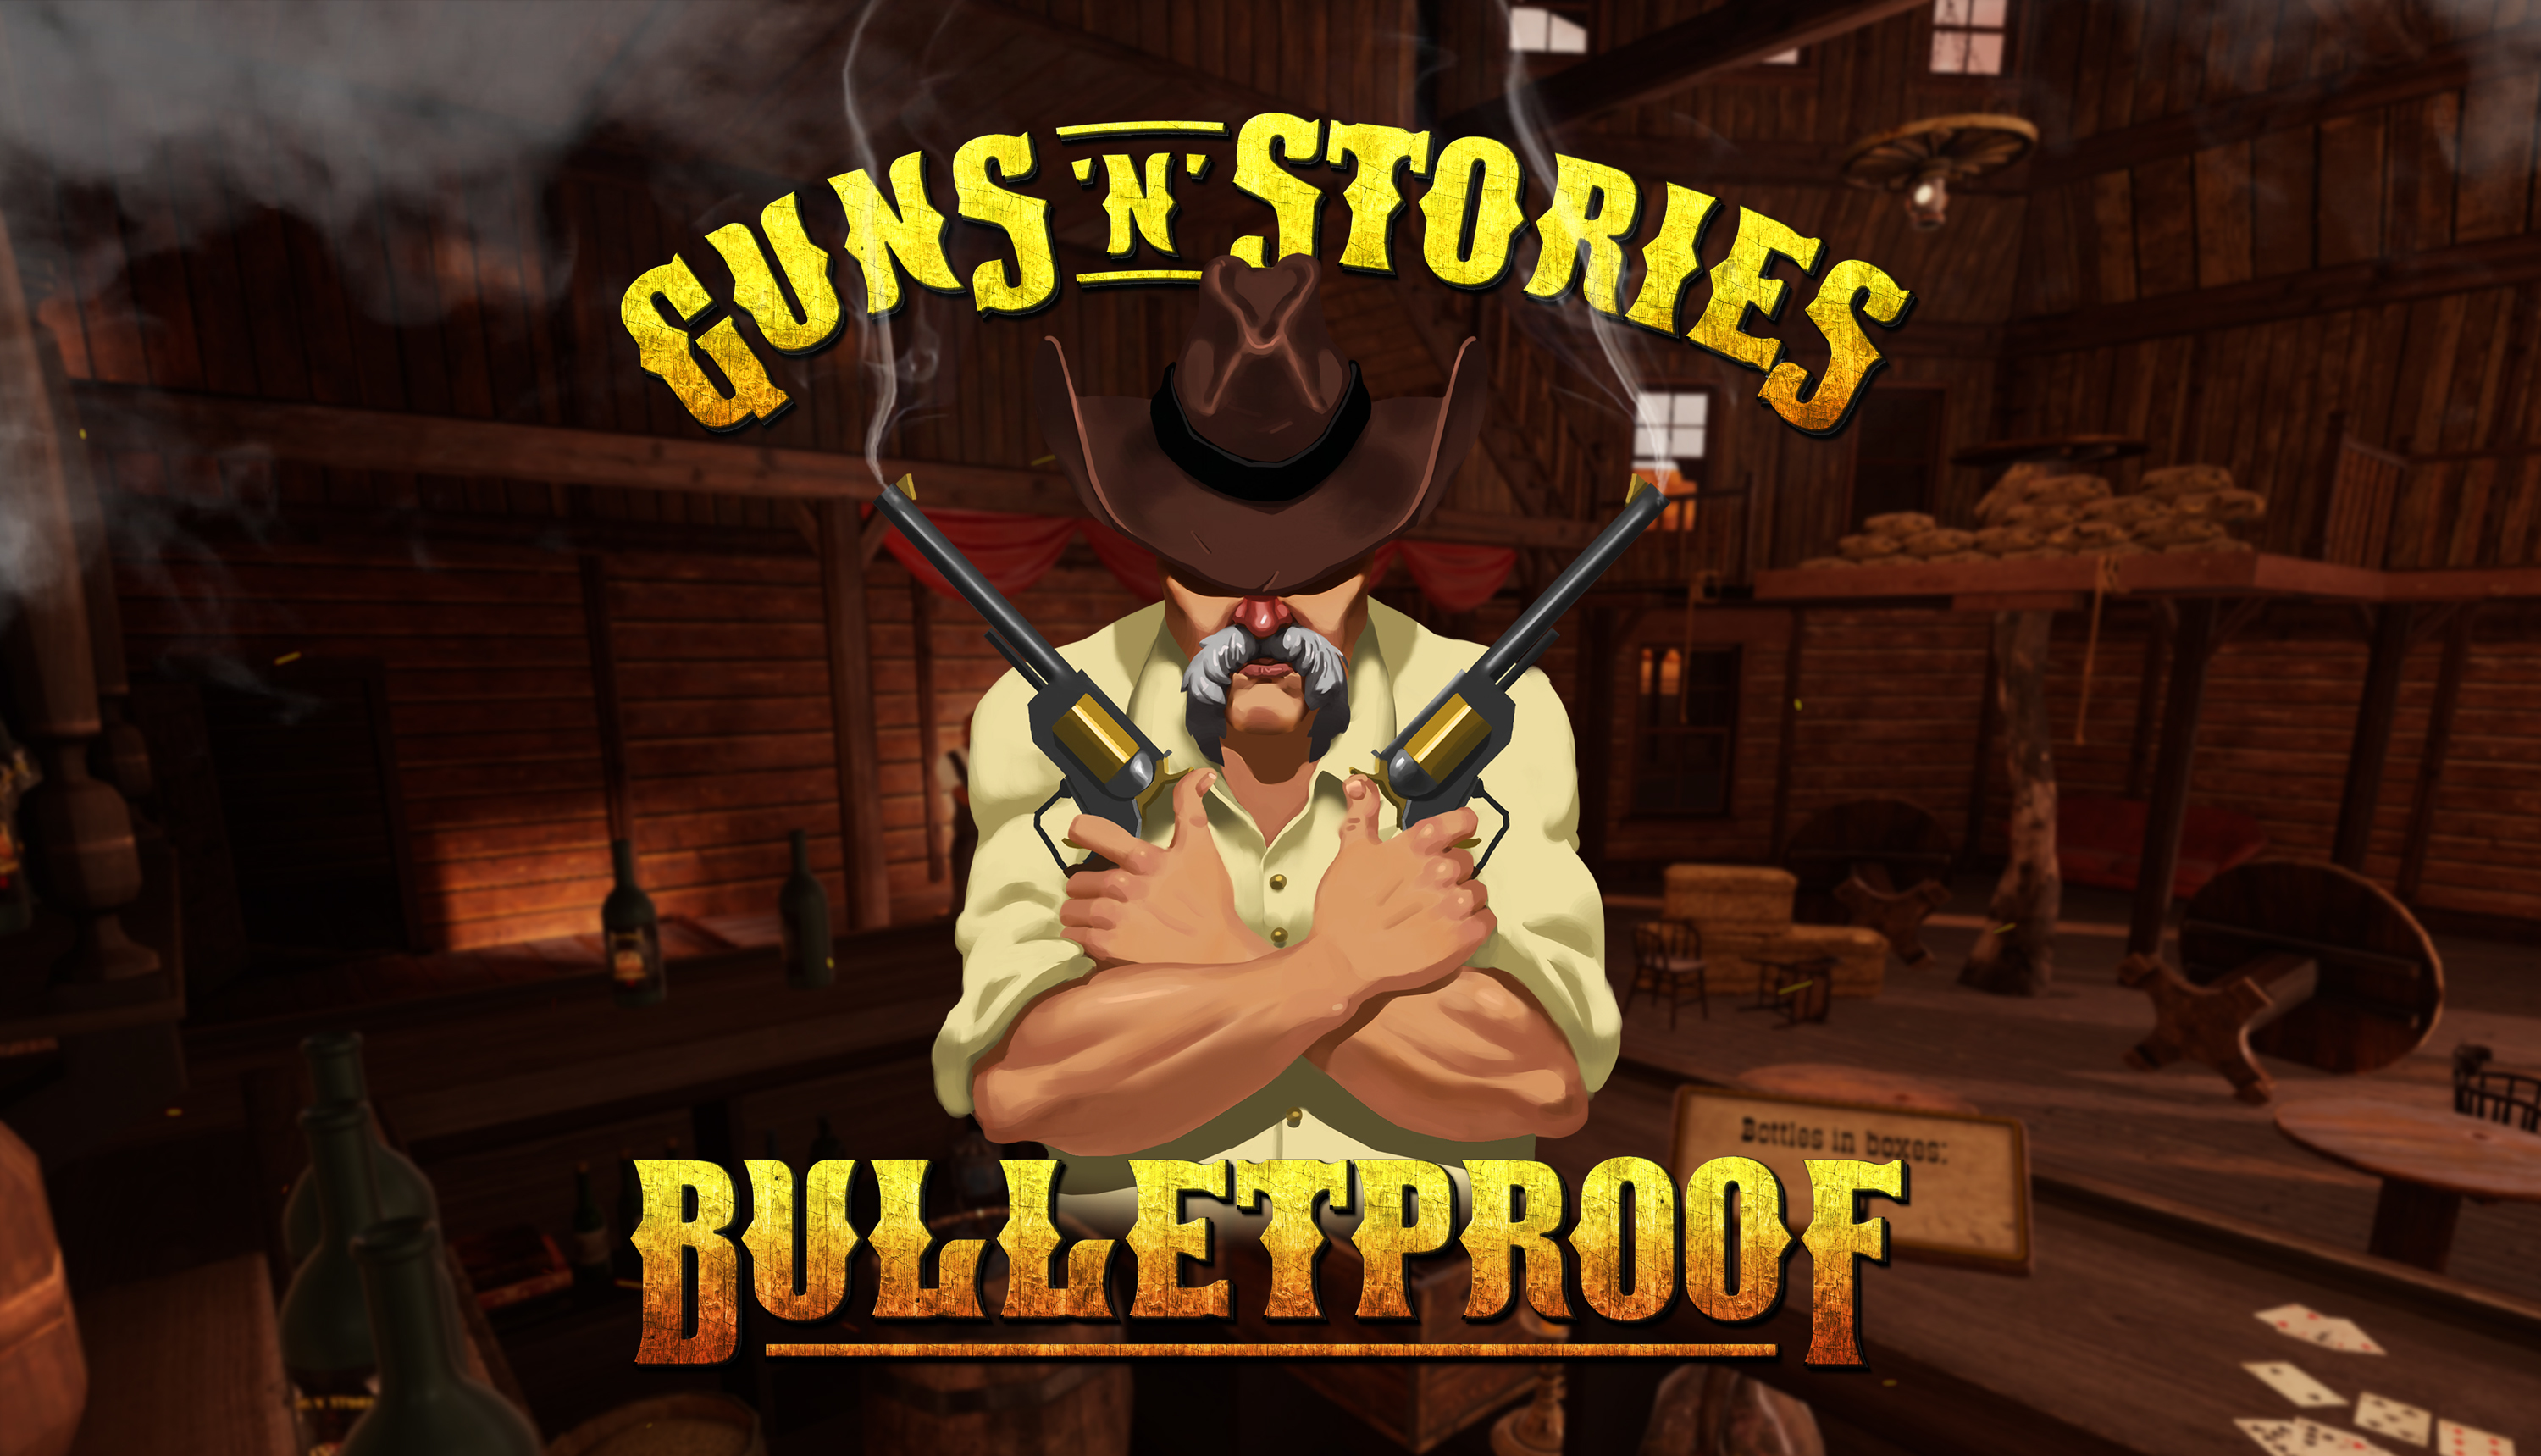 Gunsnstories Bulletproof Vr This Day Came The Game Is Launched Out Of Steam Early Access